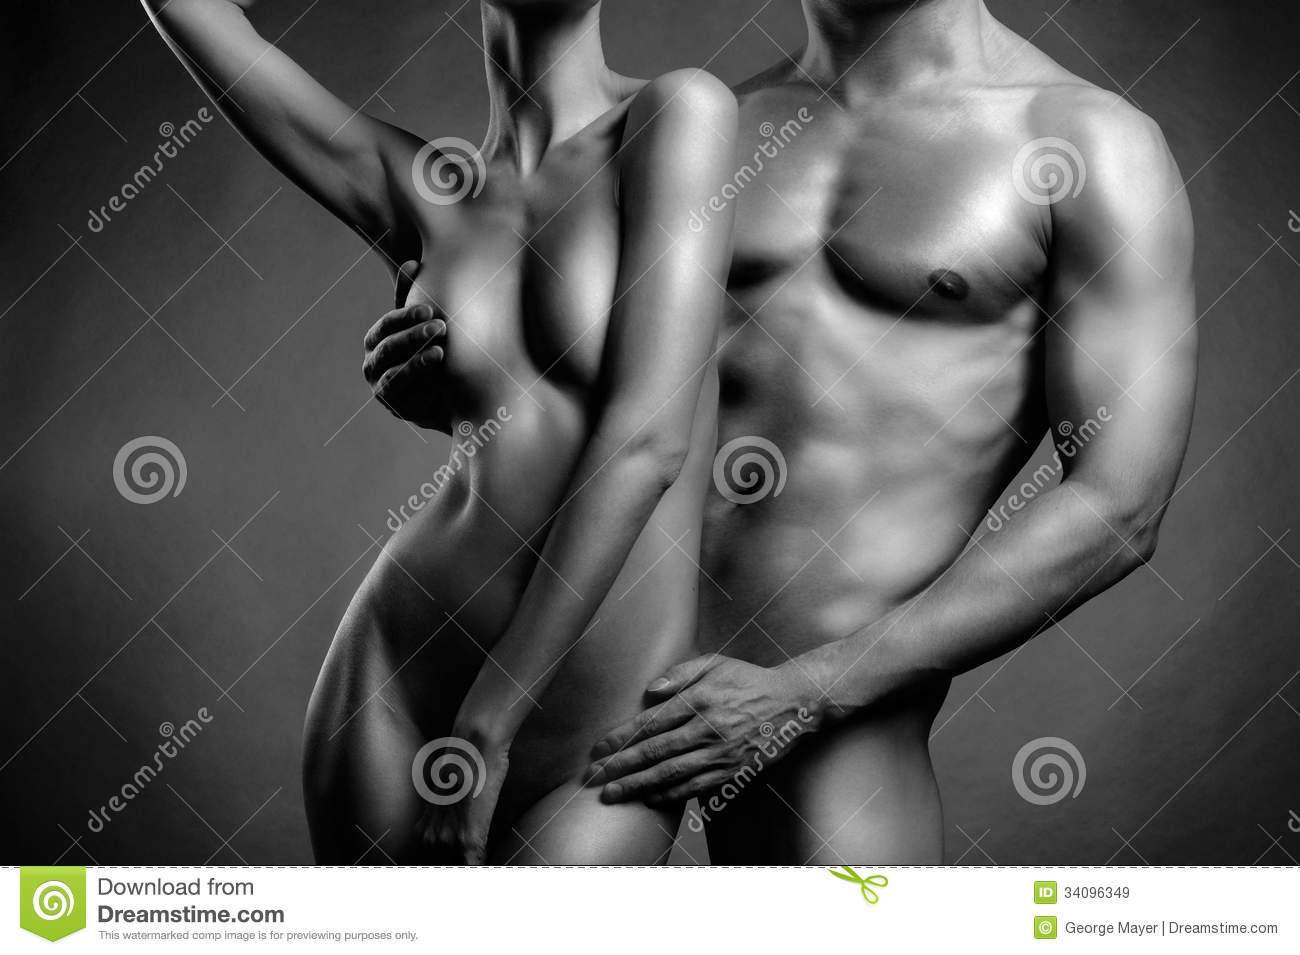 Belong Male Sexual Bi For In Couple Ocala Looking Hot Their 30s